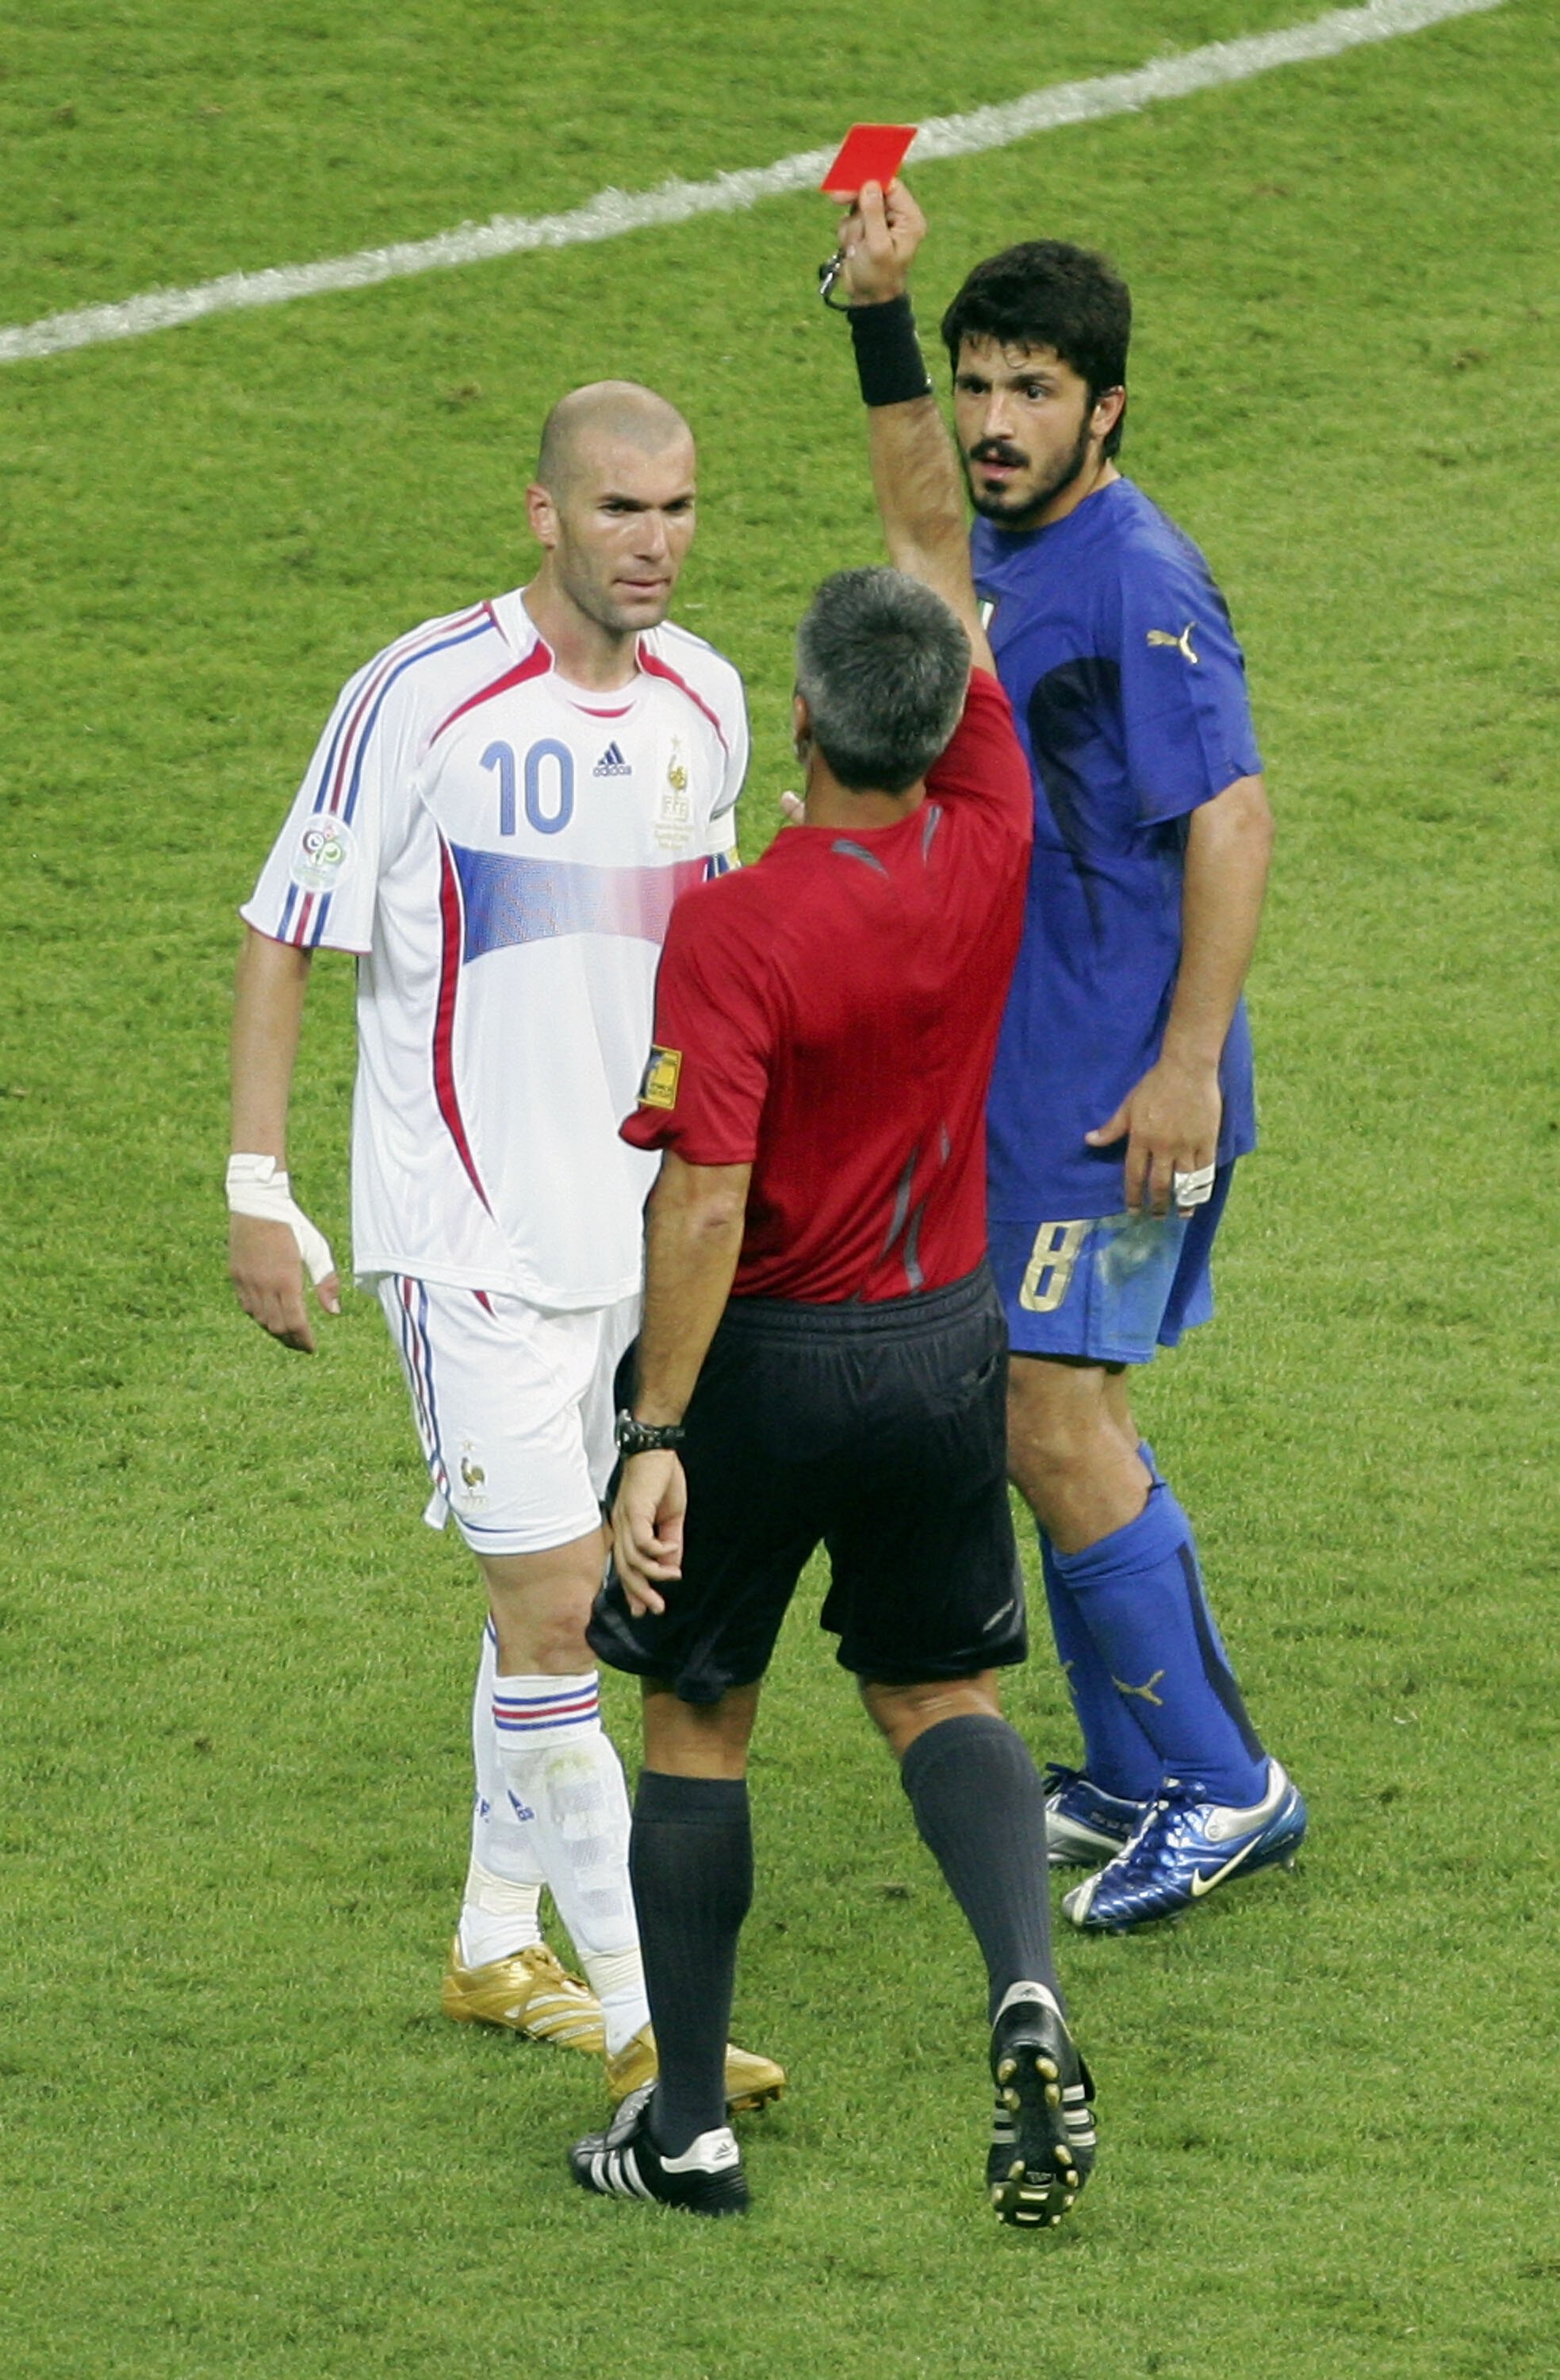 BERLIN - JULY 09:  Zinedine Zidane (L) of France is shown the red card by Referee Horacio Elizondo of Argentina as Gennaro Gattuso of Italy looks on during the FIFA World Cup Germany 2006 Final match between Italy and France at the Olympic Stadium on July